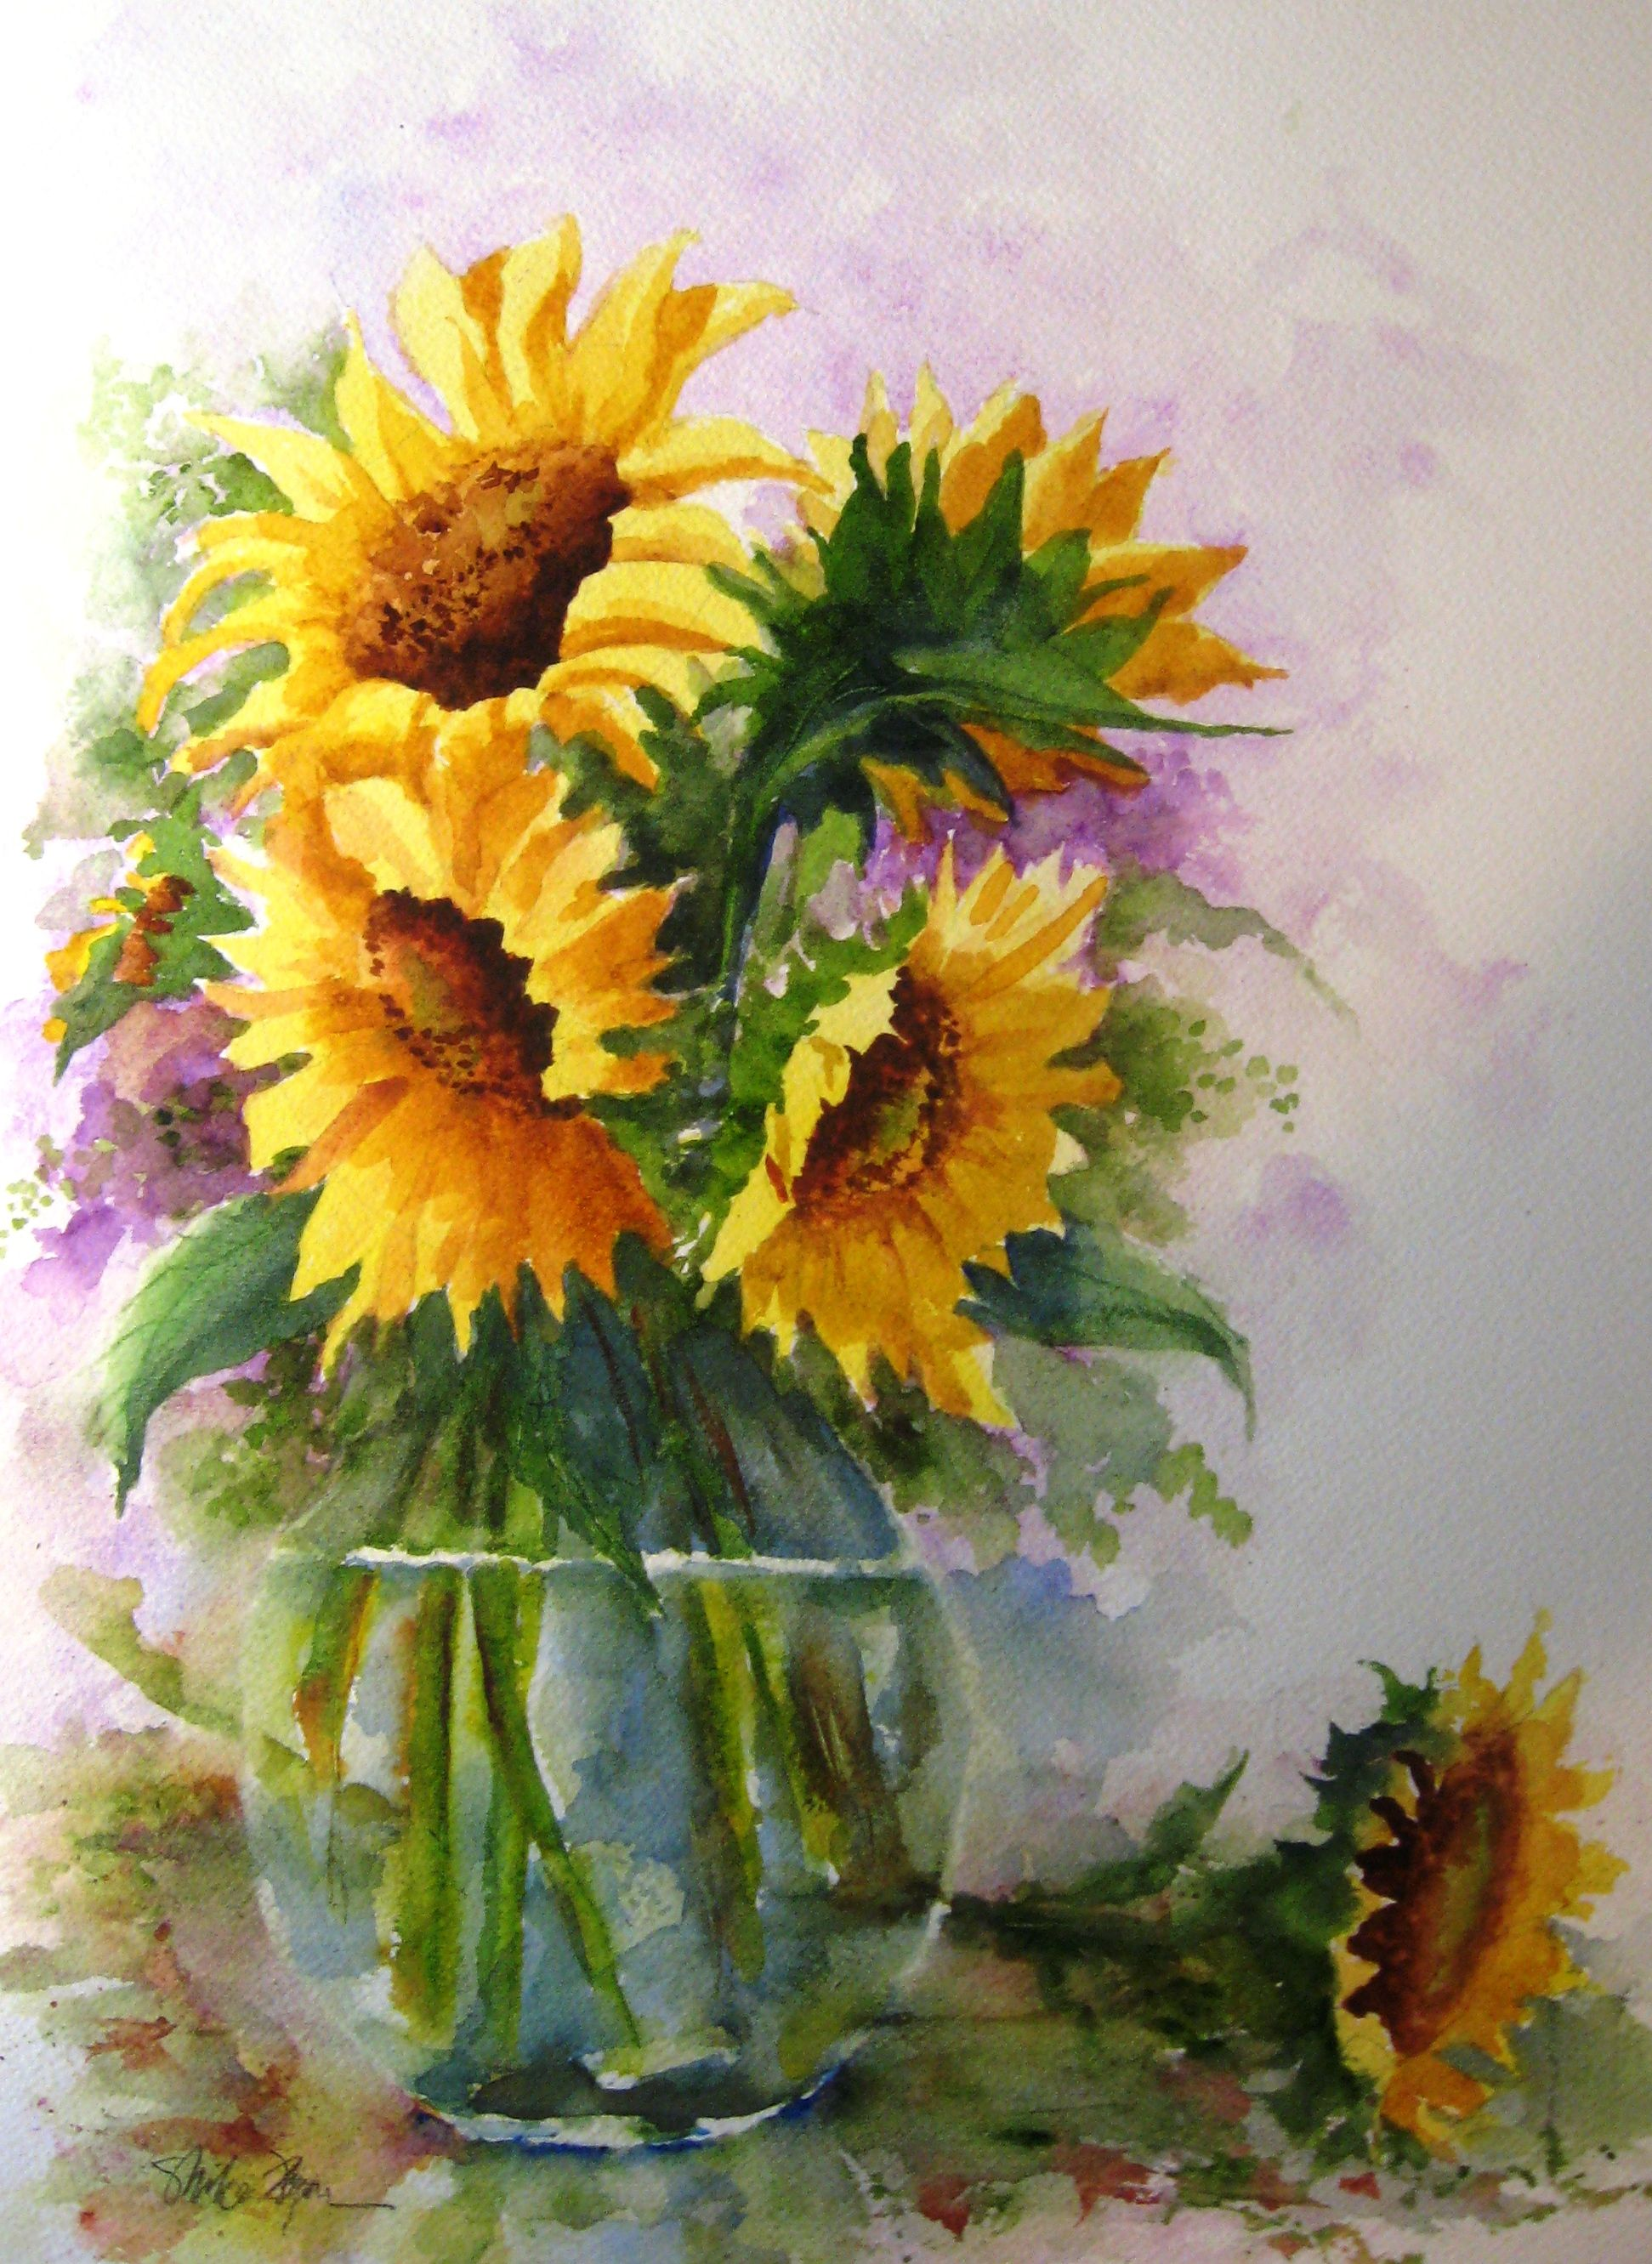 Watercolor paintings of flowers summertime mike flynn for Flower paintings on canvas